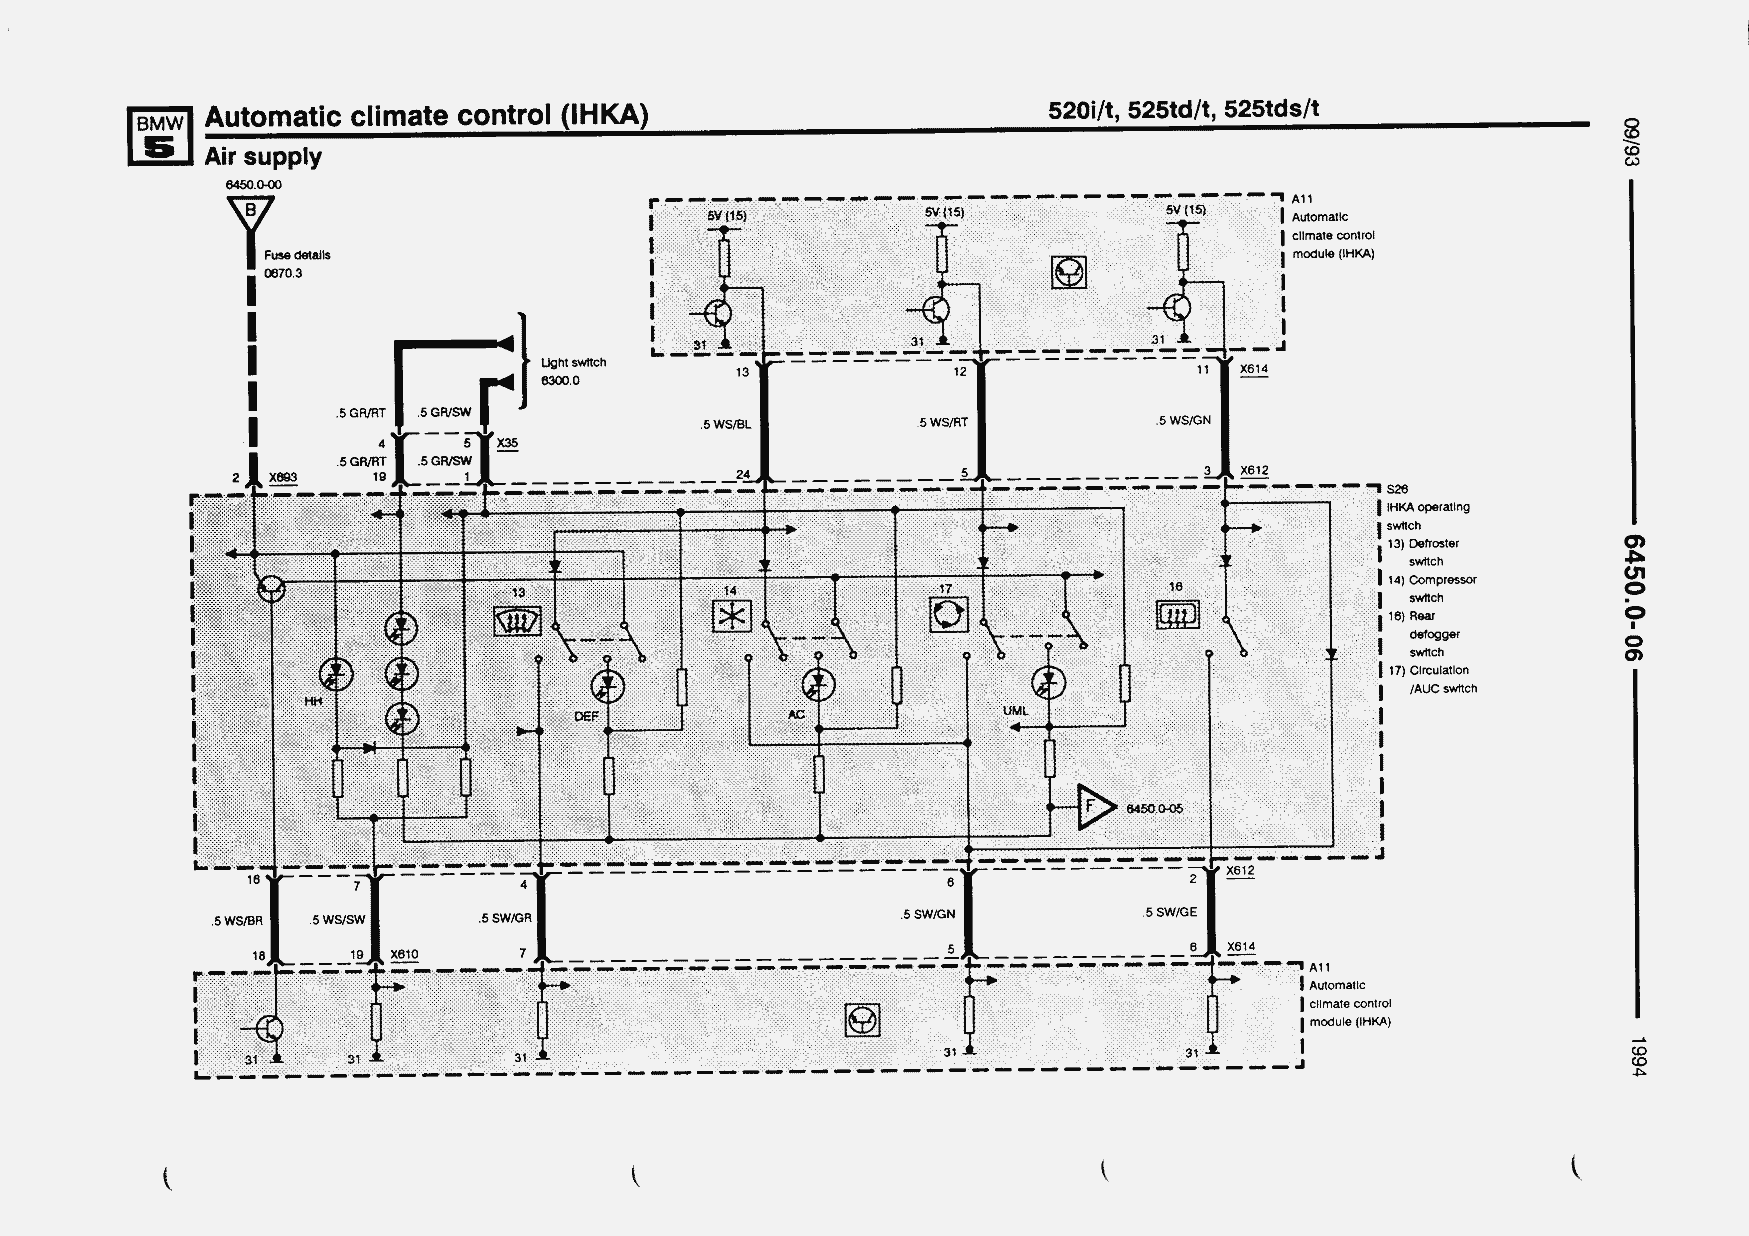 Electrical Troubleshooting Manual 5 Series E34 518i 520i 525td Wiring Diagram E Input A Output M Ground